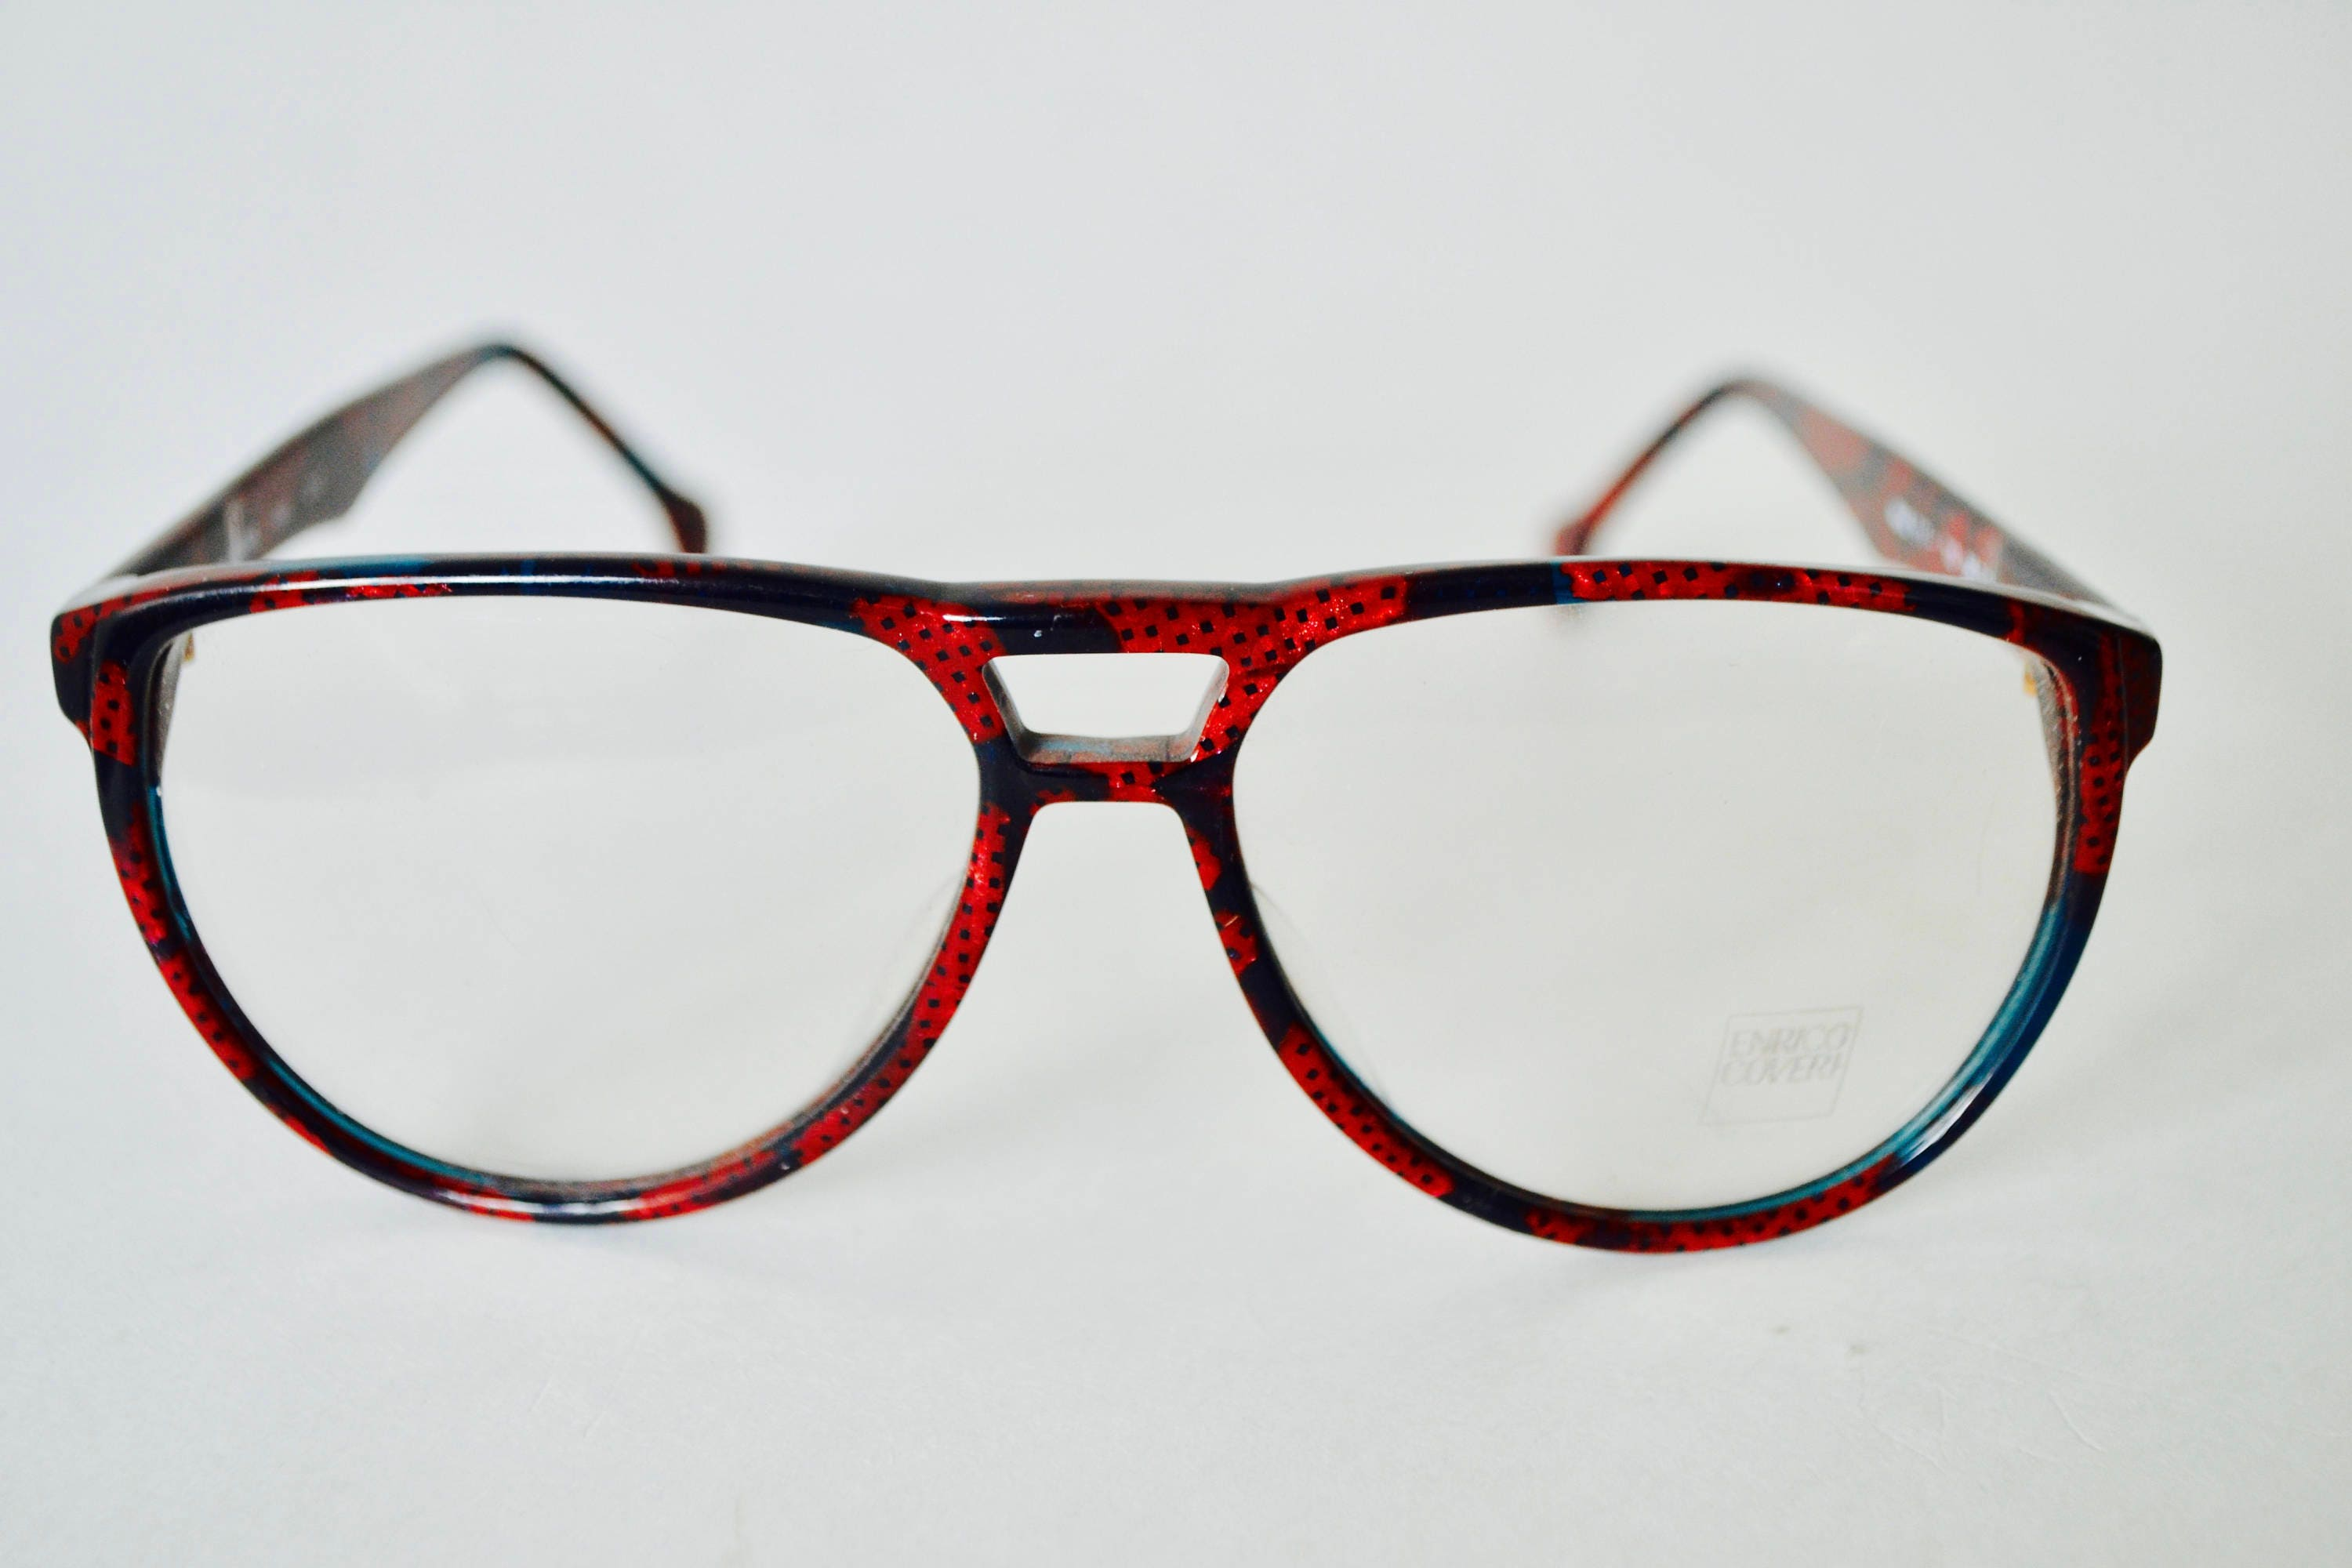 864c847364 Vintage Enrico Coveri MOD 111 Red Black and Green Eyeglasses Frame